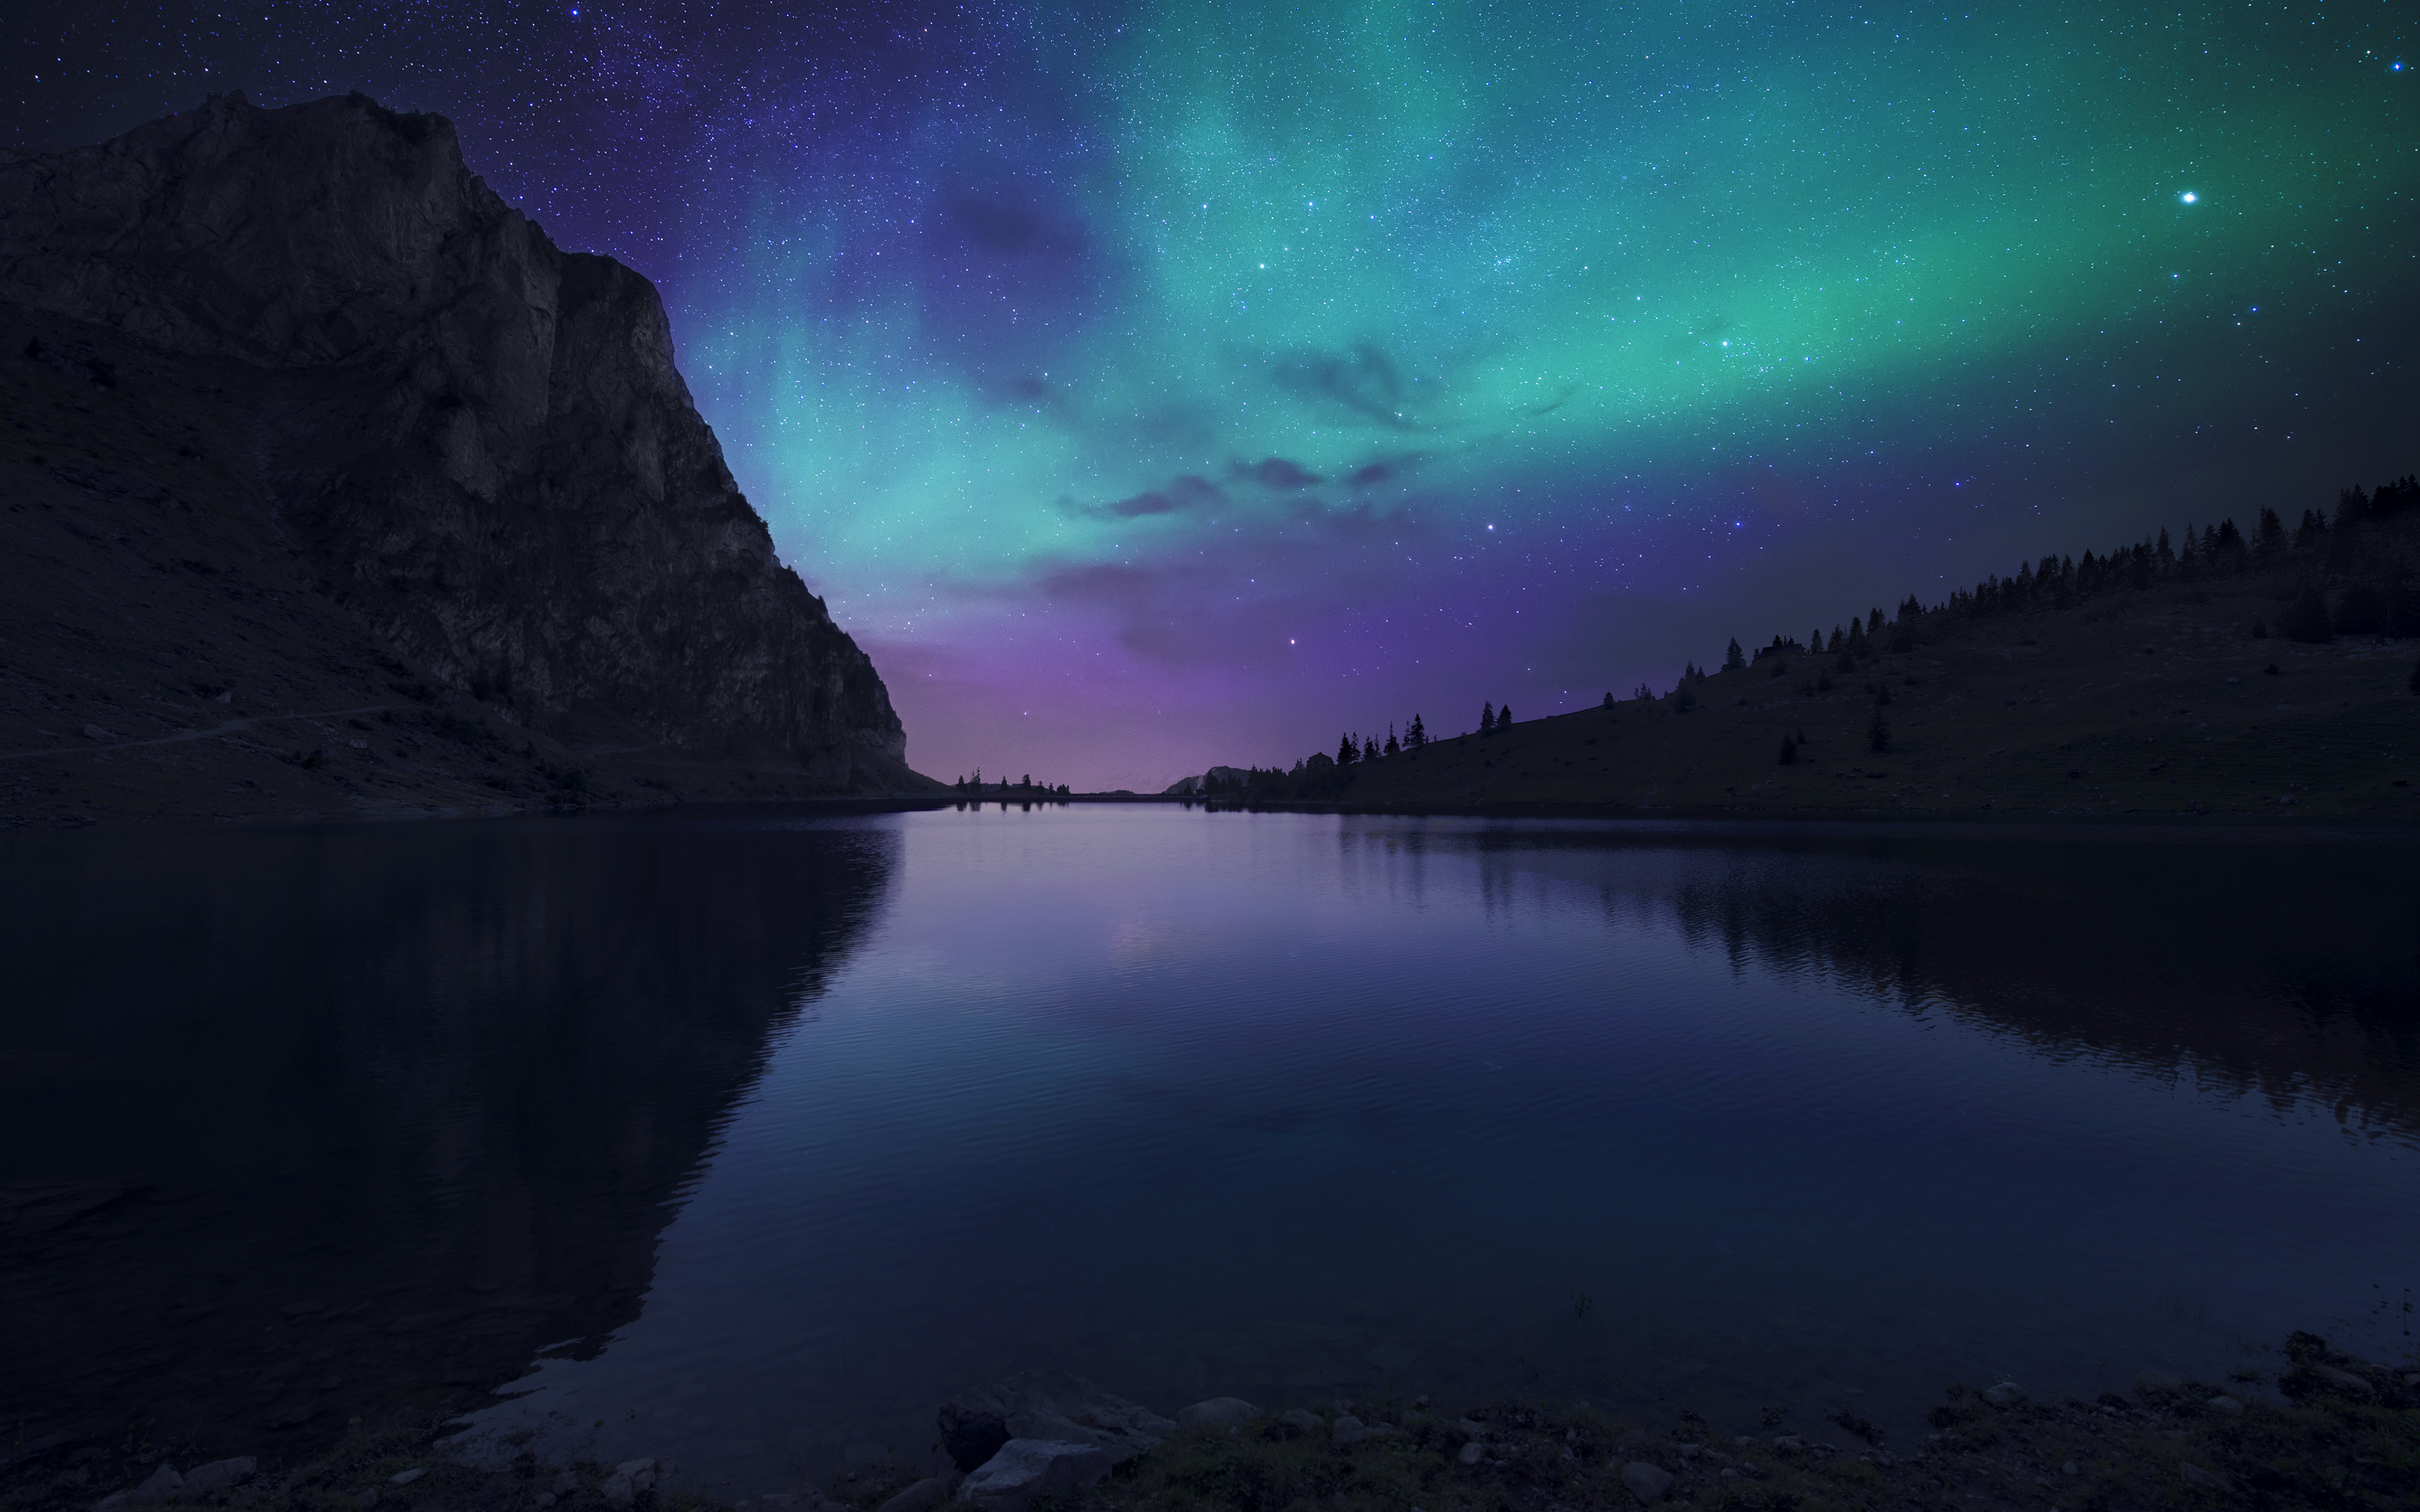 General 3840x2400 landscape nature lake mountains night dark sky stars